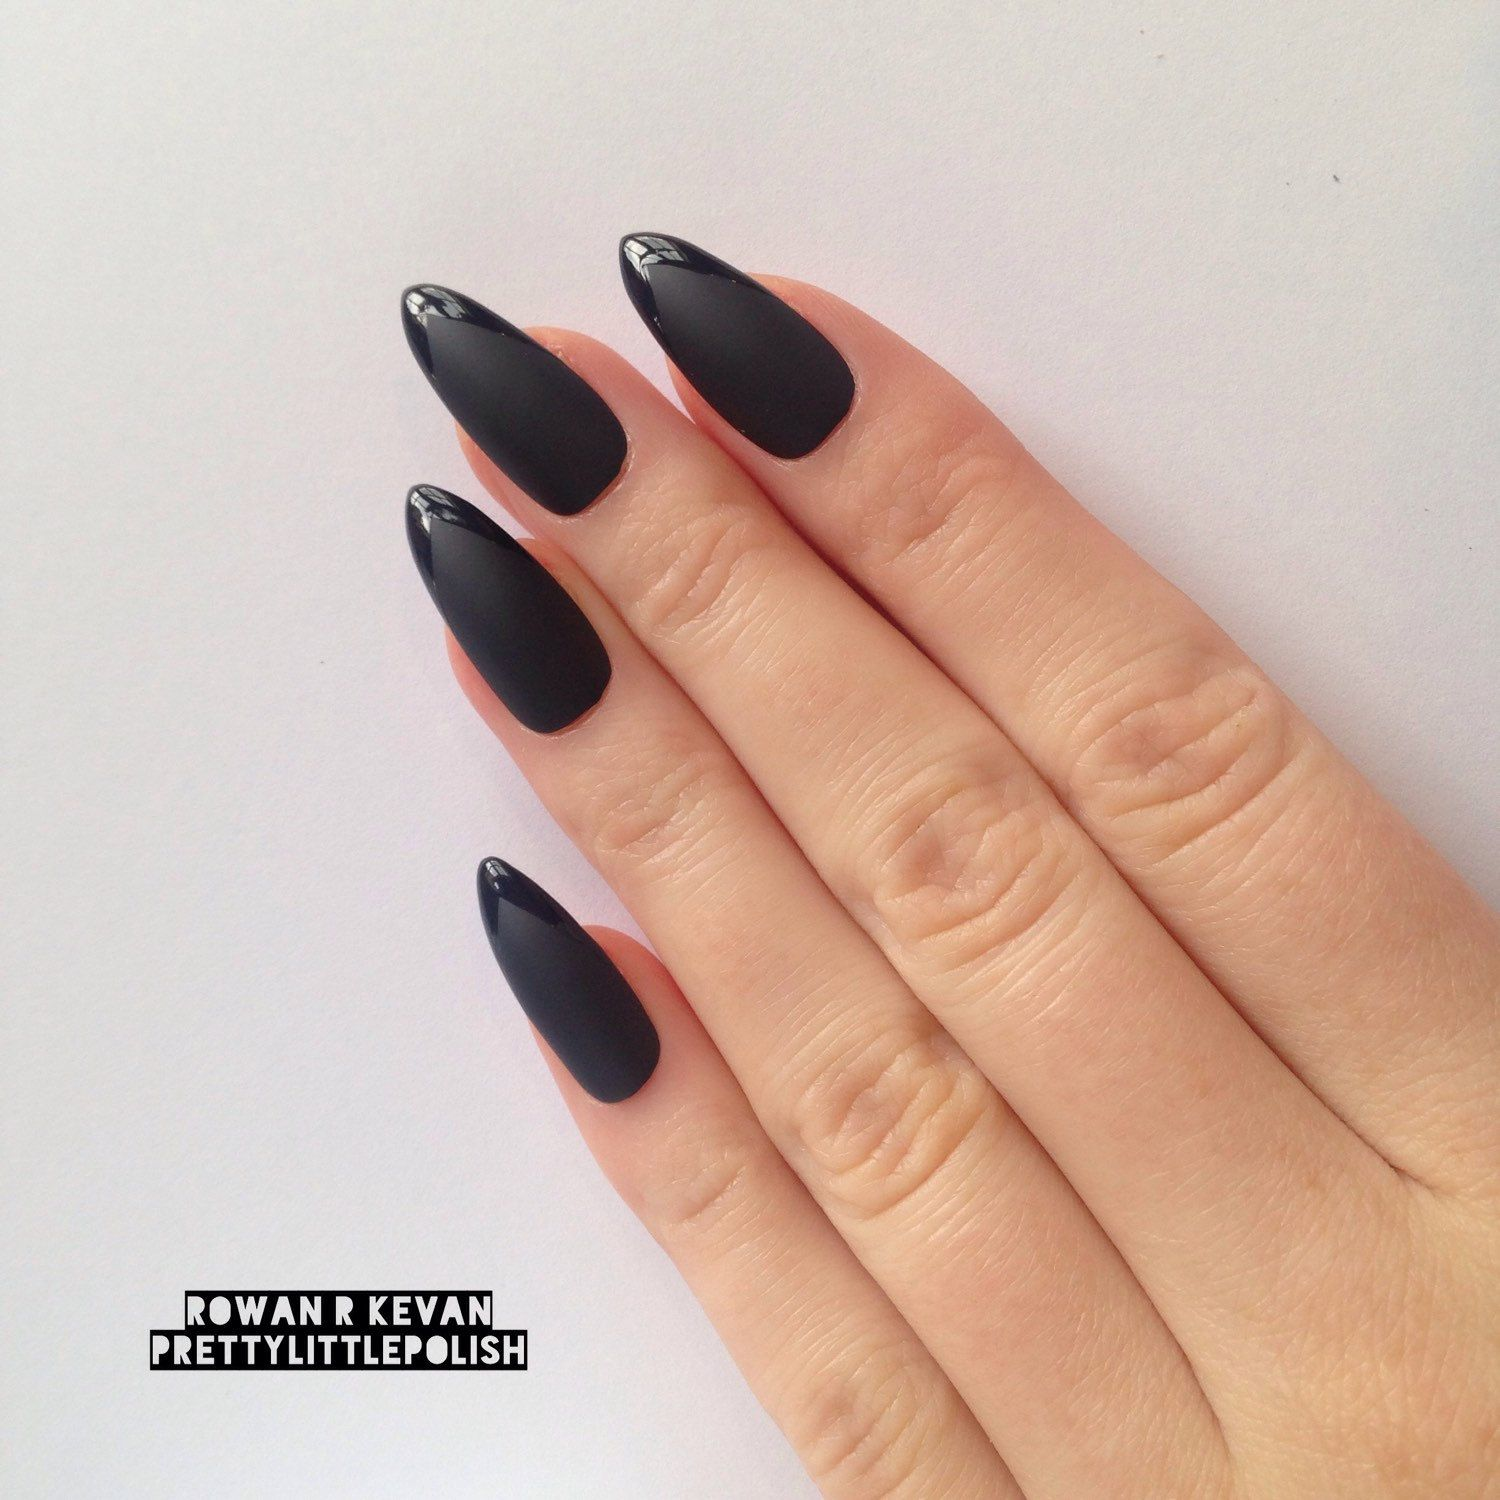 nail design mat black almond - Google-søgning | nailz | Pinterest